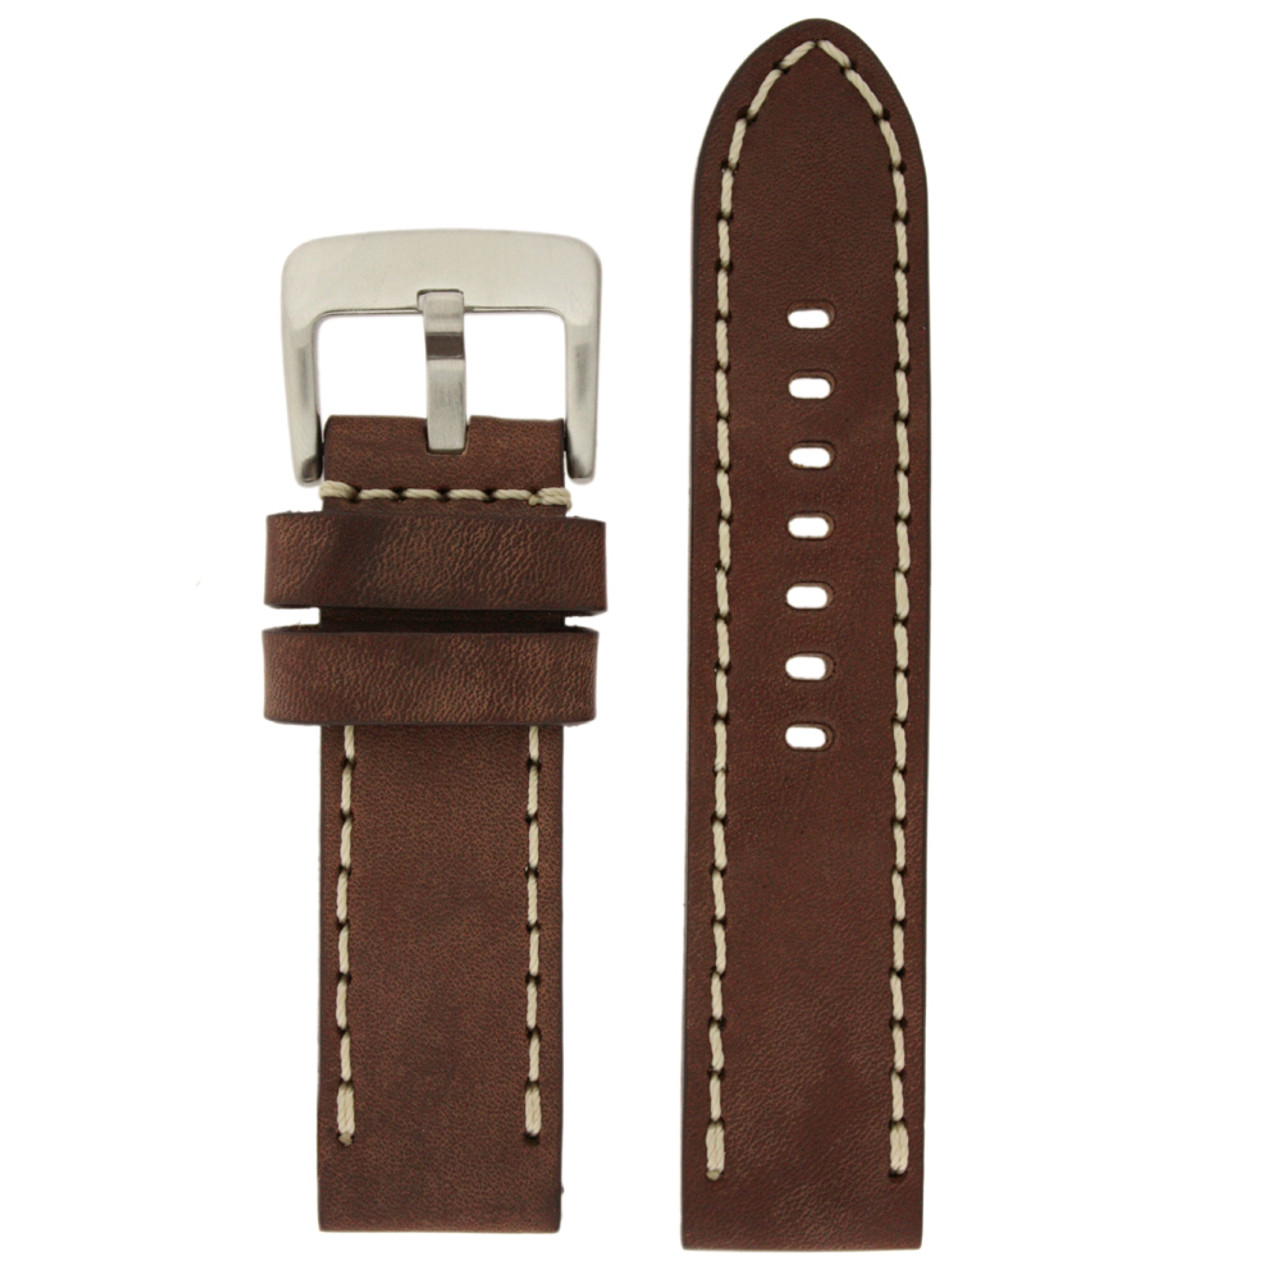 Brown Leather Watch Band with White Topstitching - Top View